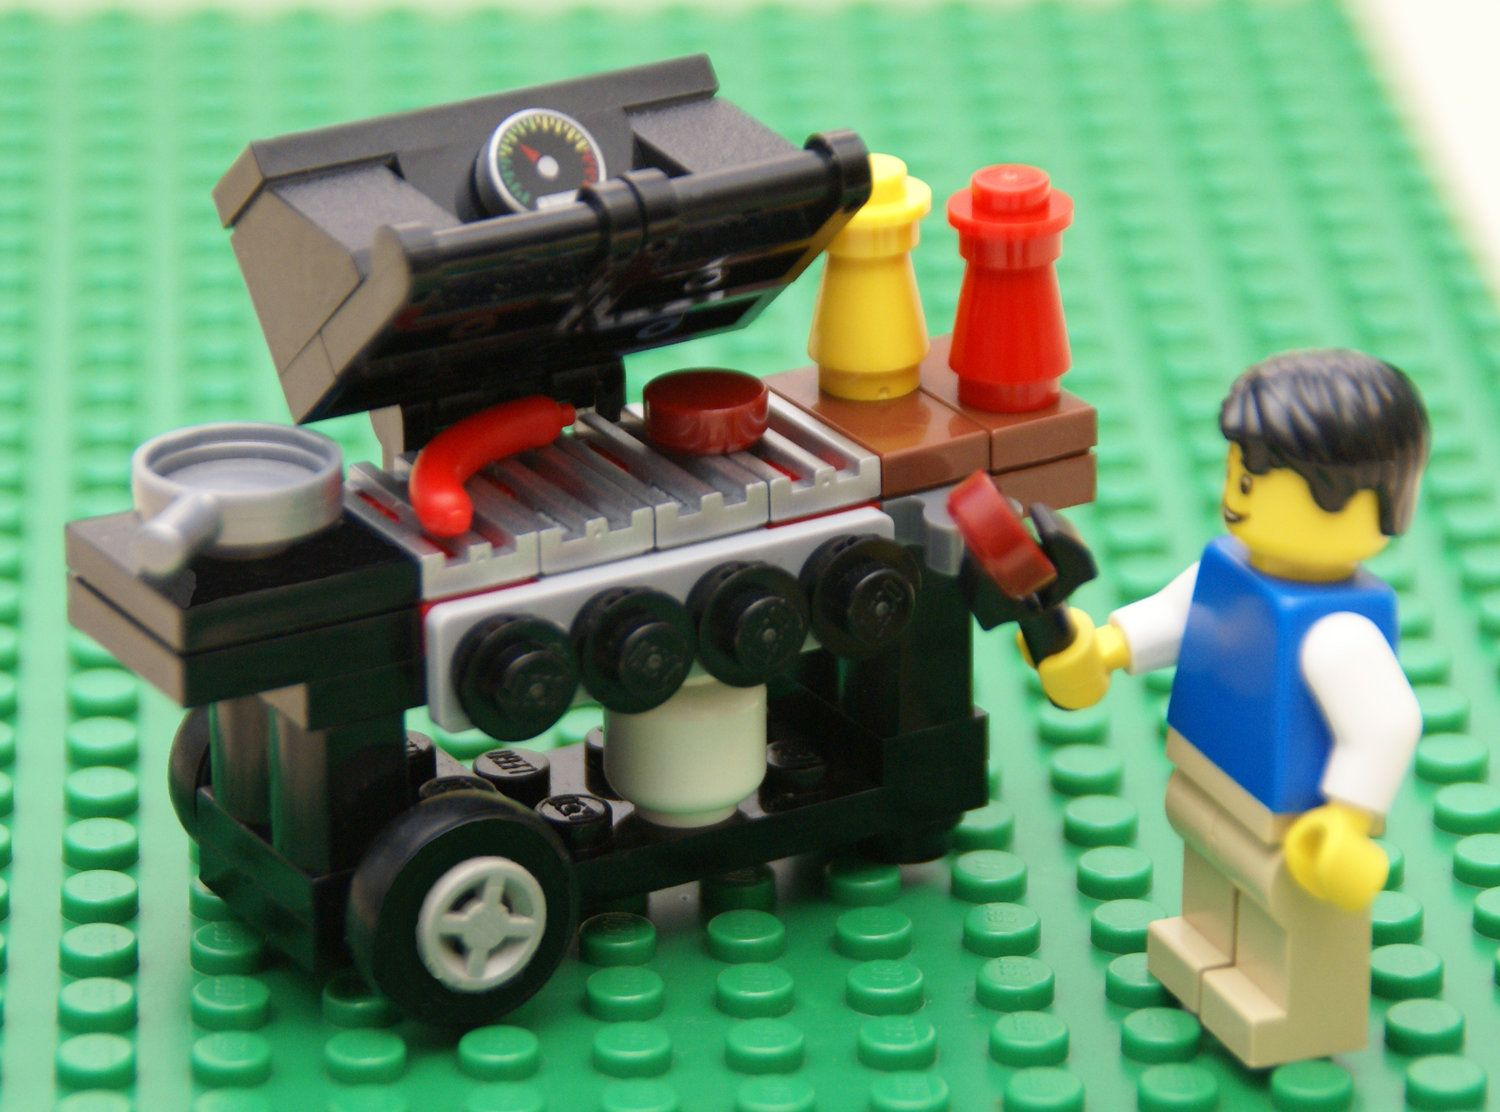 Instructions To Build A Barbecue Out Of Lego Lego Pinterest